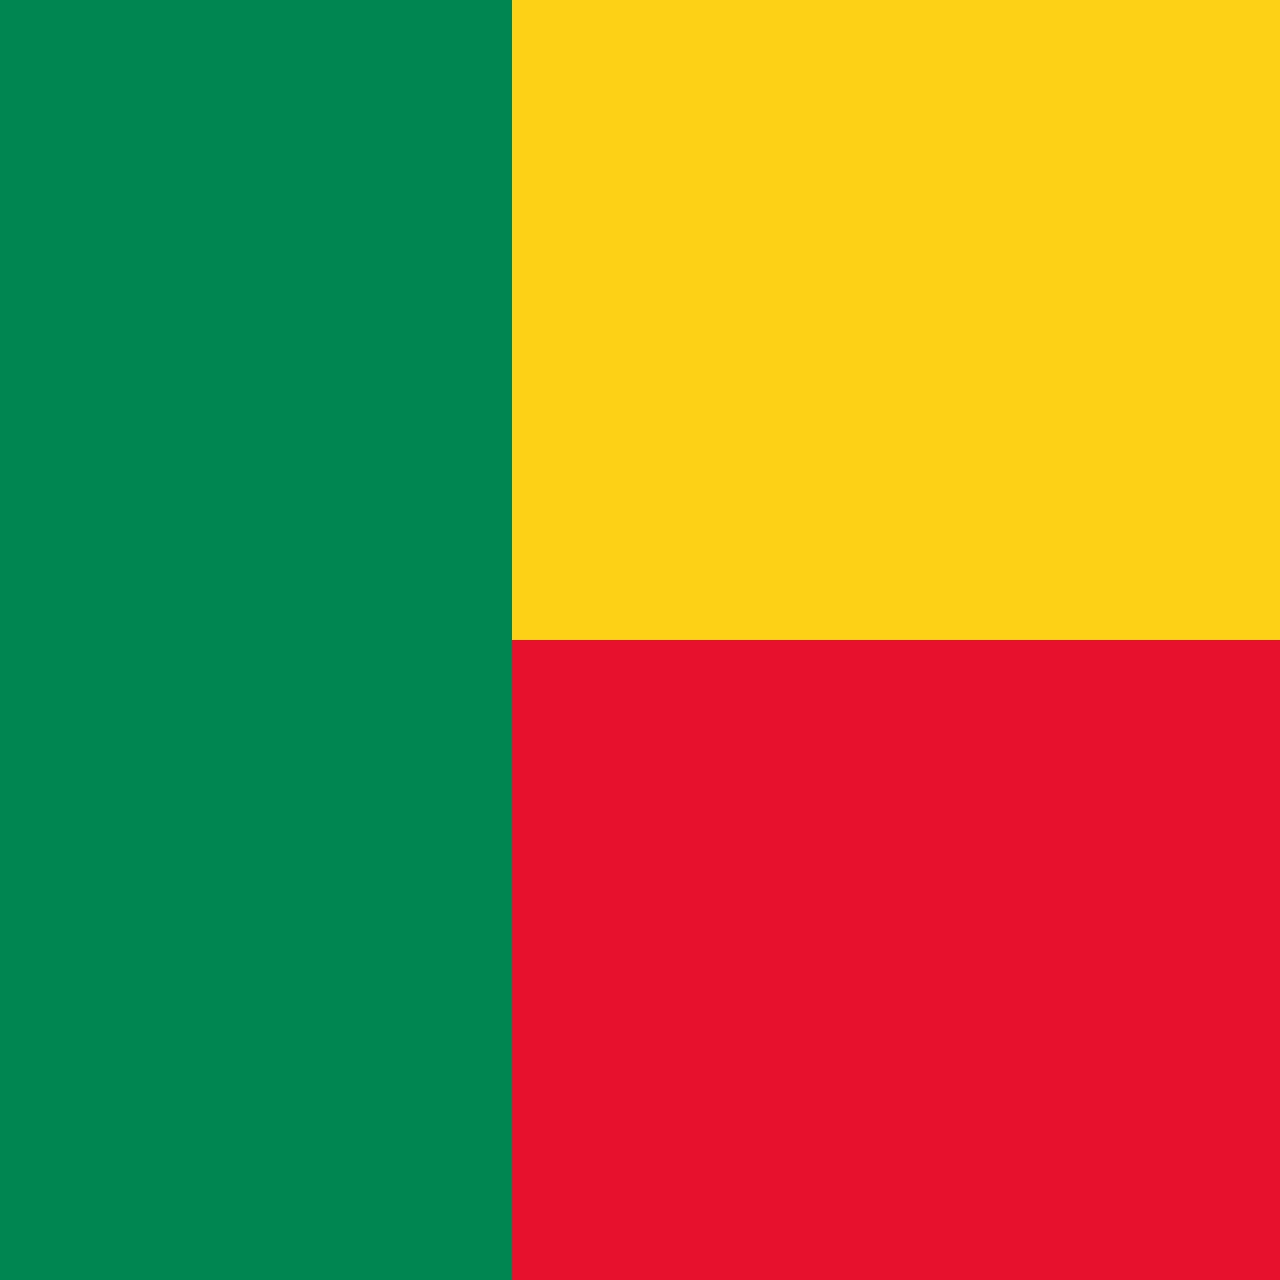 Flag_of_Benin